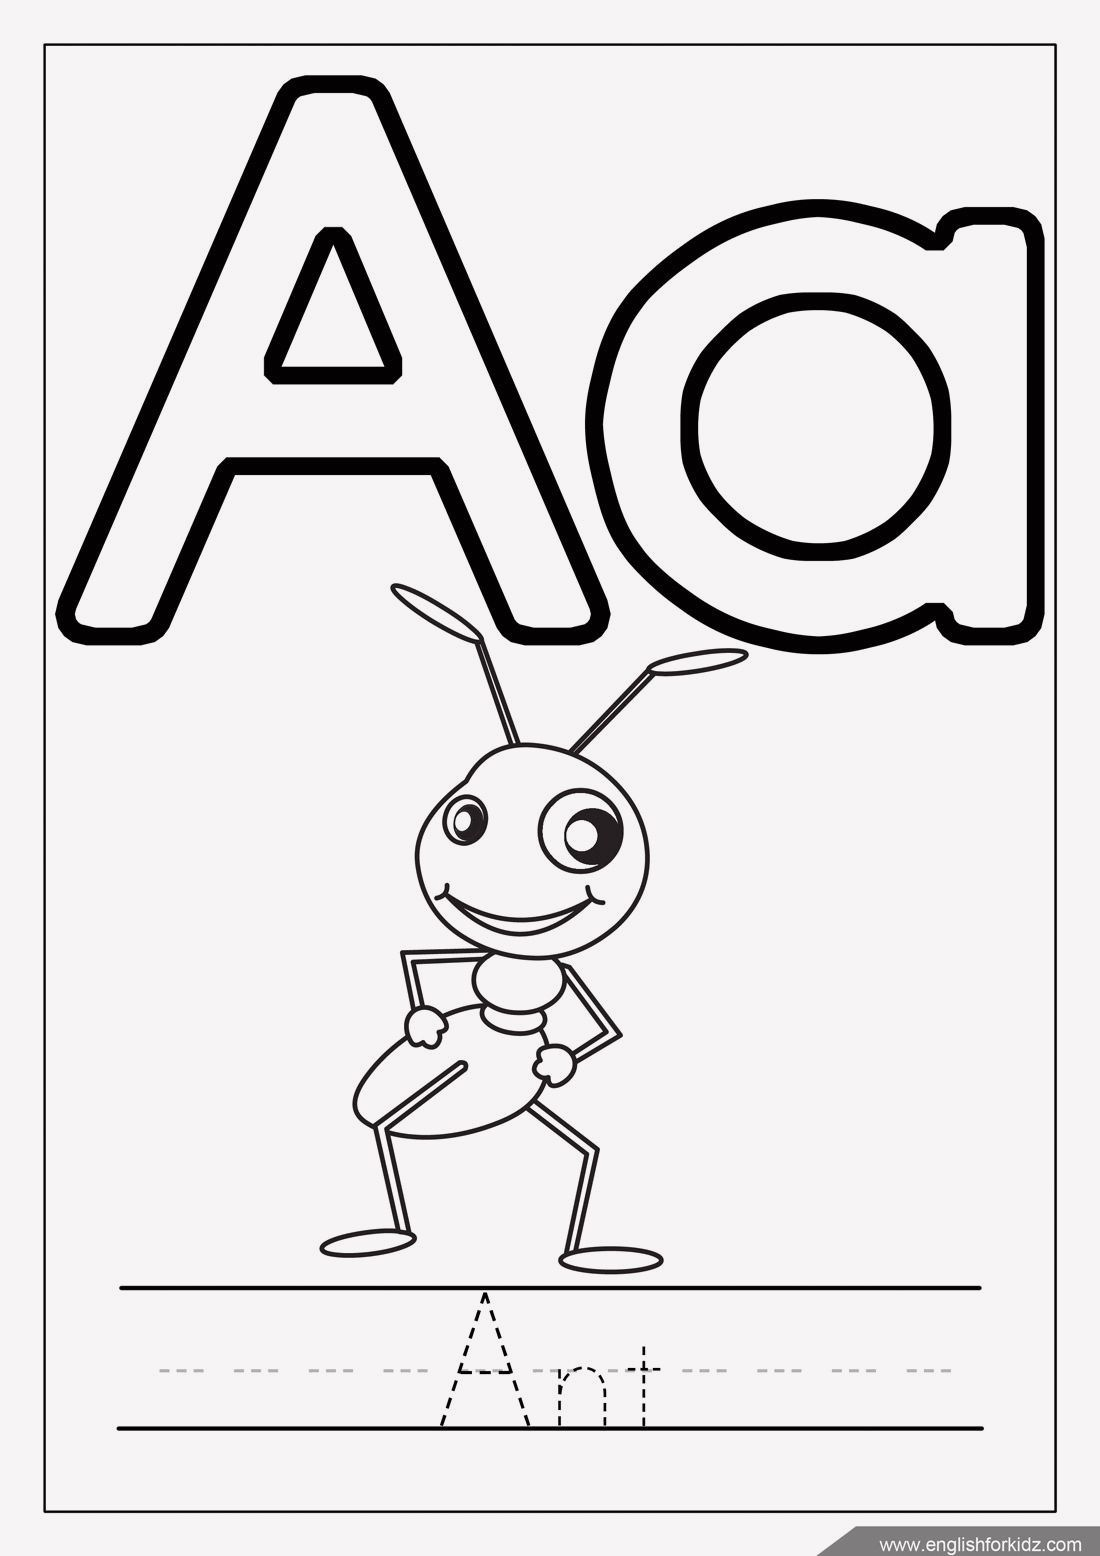 20 Alphabet Coloring Pages With Tracing In